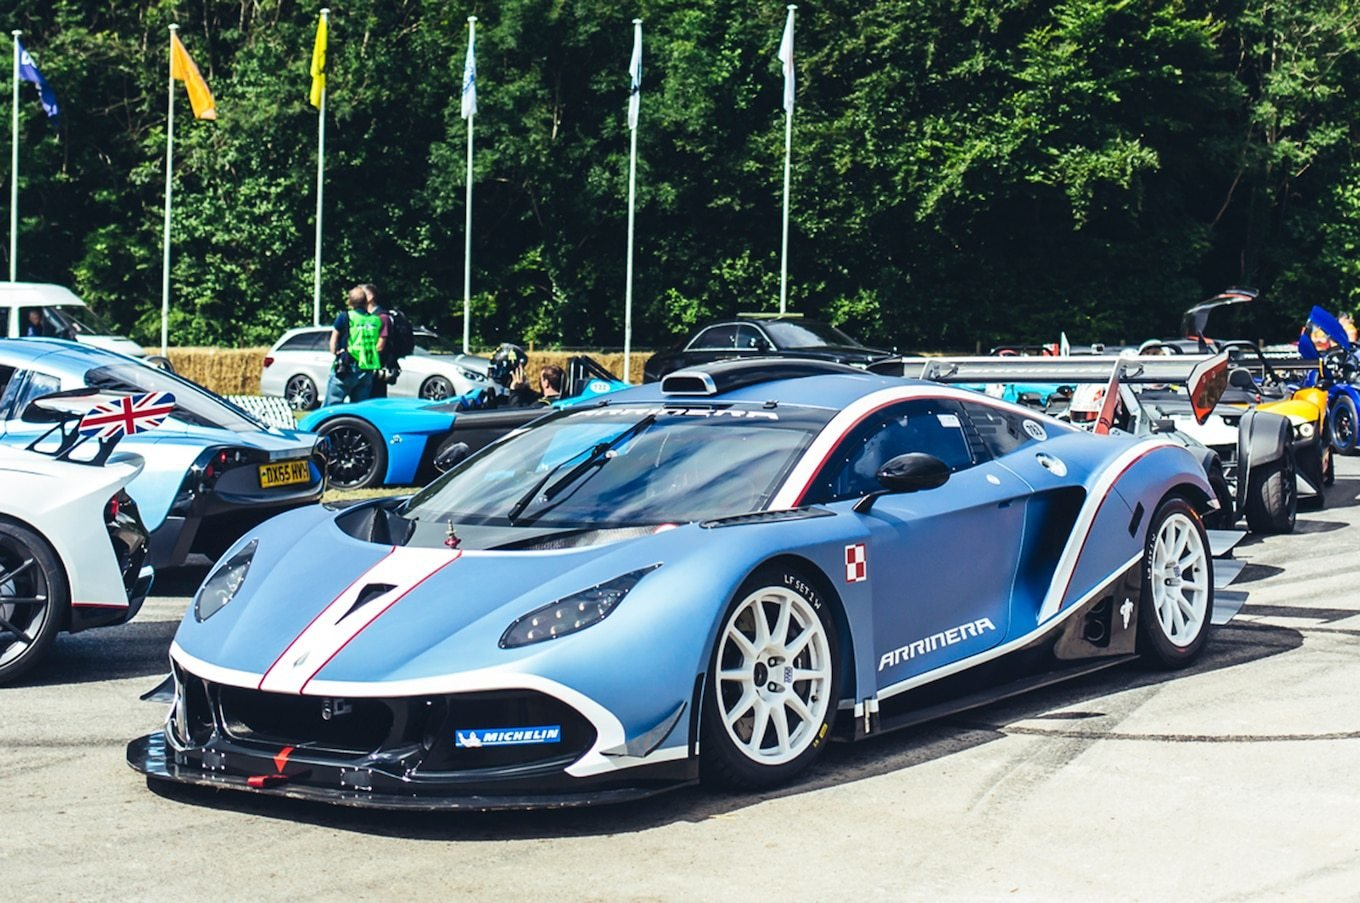 Latest Arrinera Hussarya Gt Is First Polish Car To Enter Goodwood Free Download